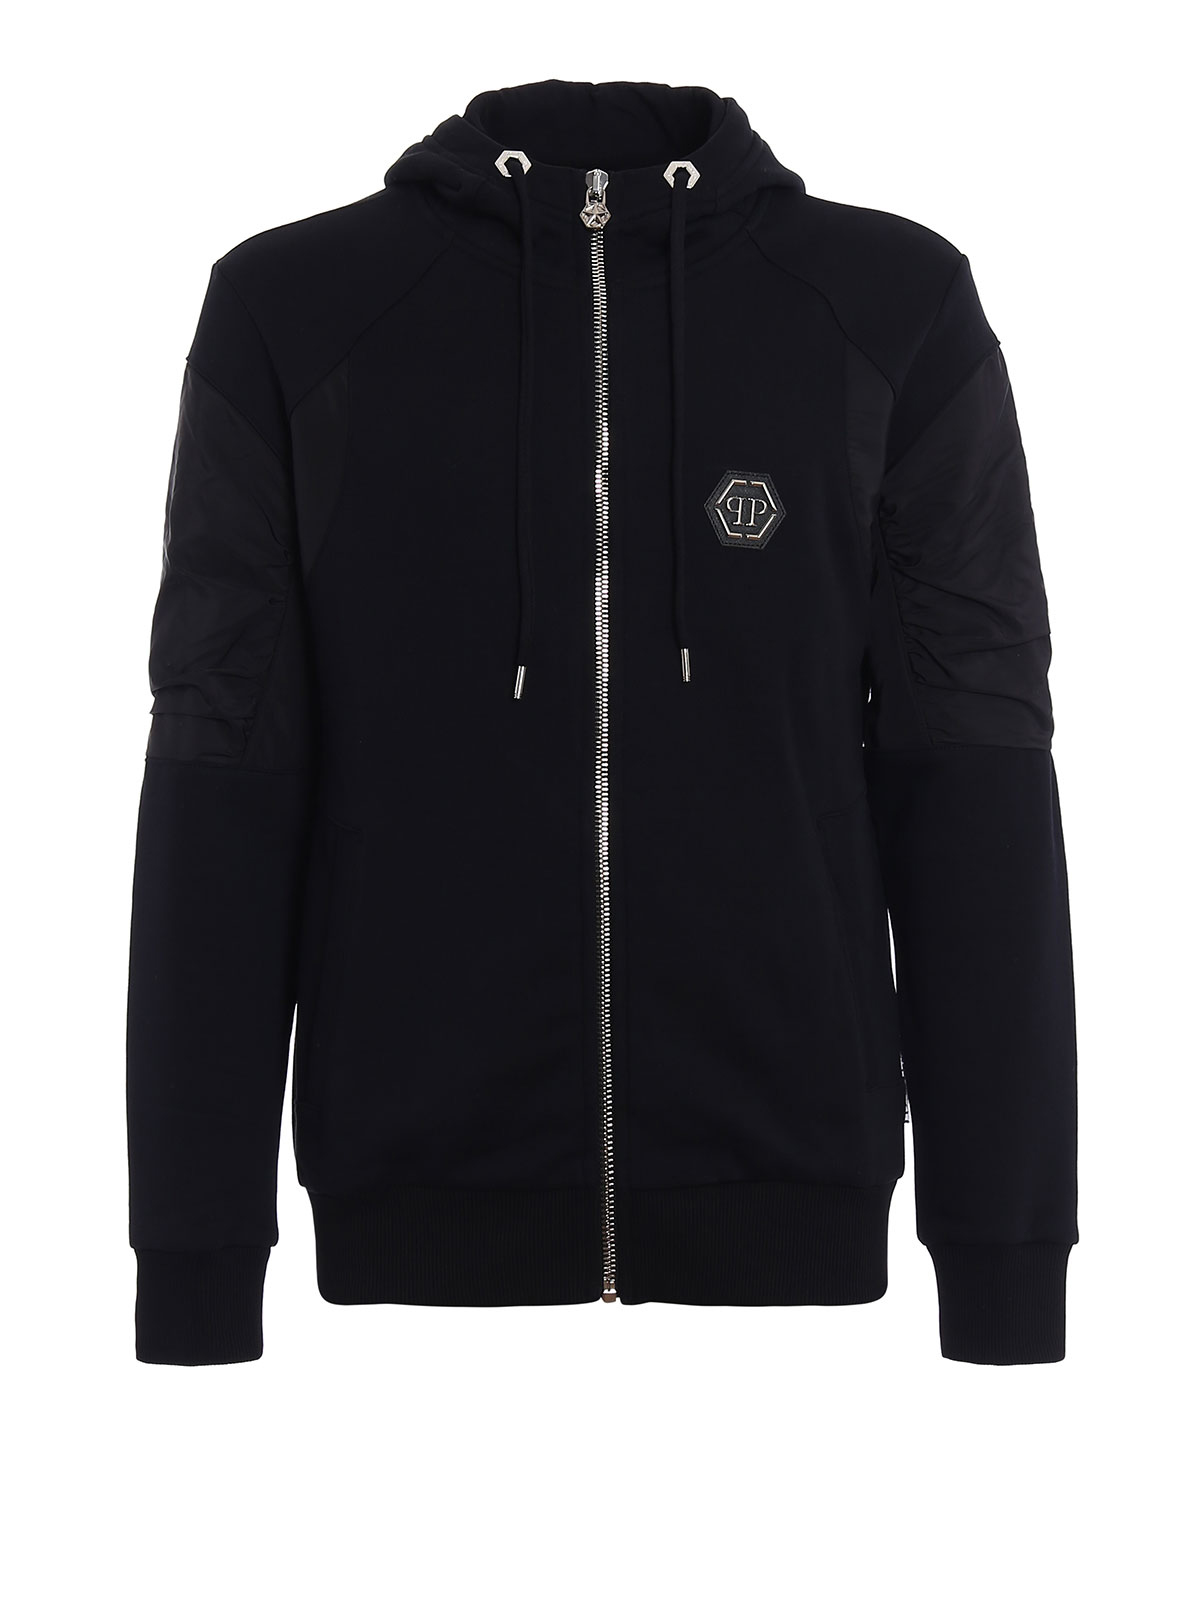 ansya hooded zip sweat jacket by philipp plein sweatshirts sweaters ikrix. Black Bedroom Furniture Sets. Home Design Ideas